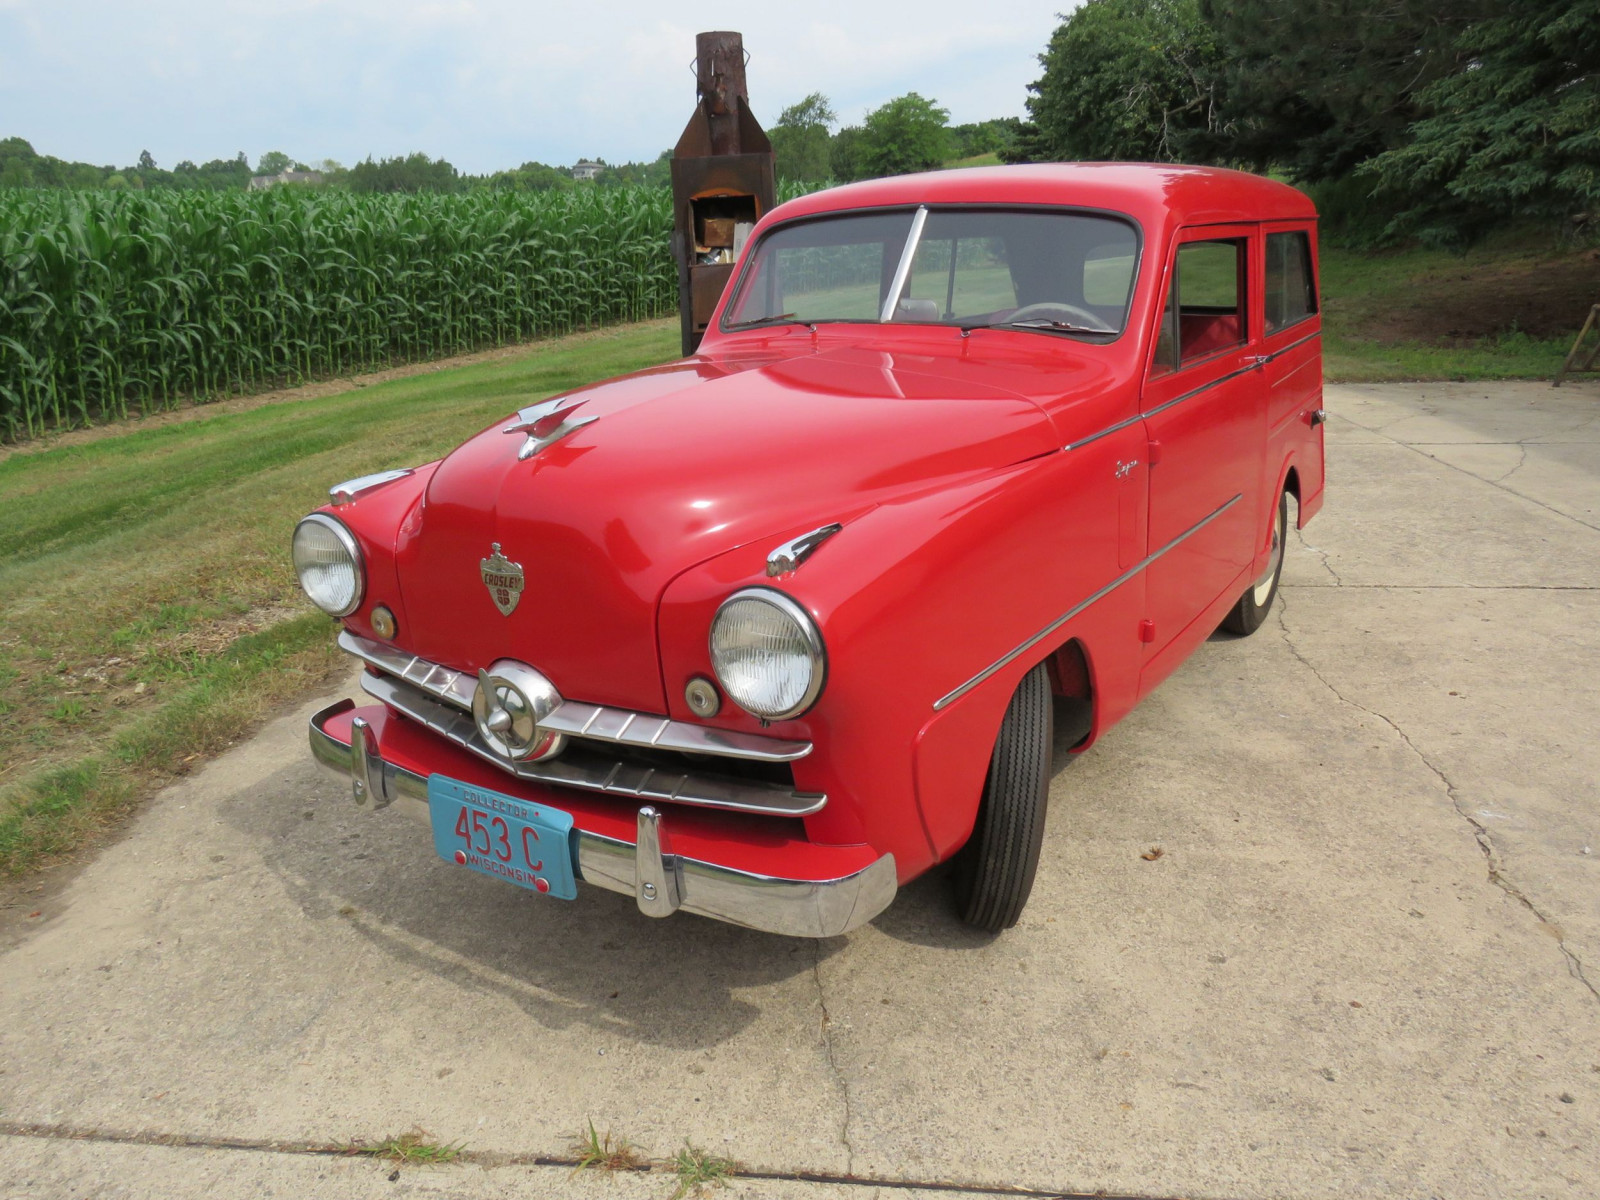 1951 Crosley Super 2dr Station wagon - Image 1